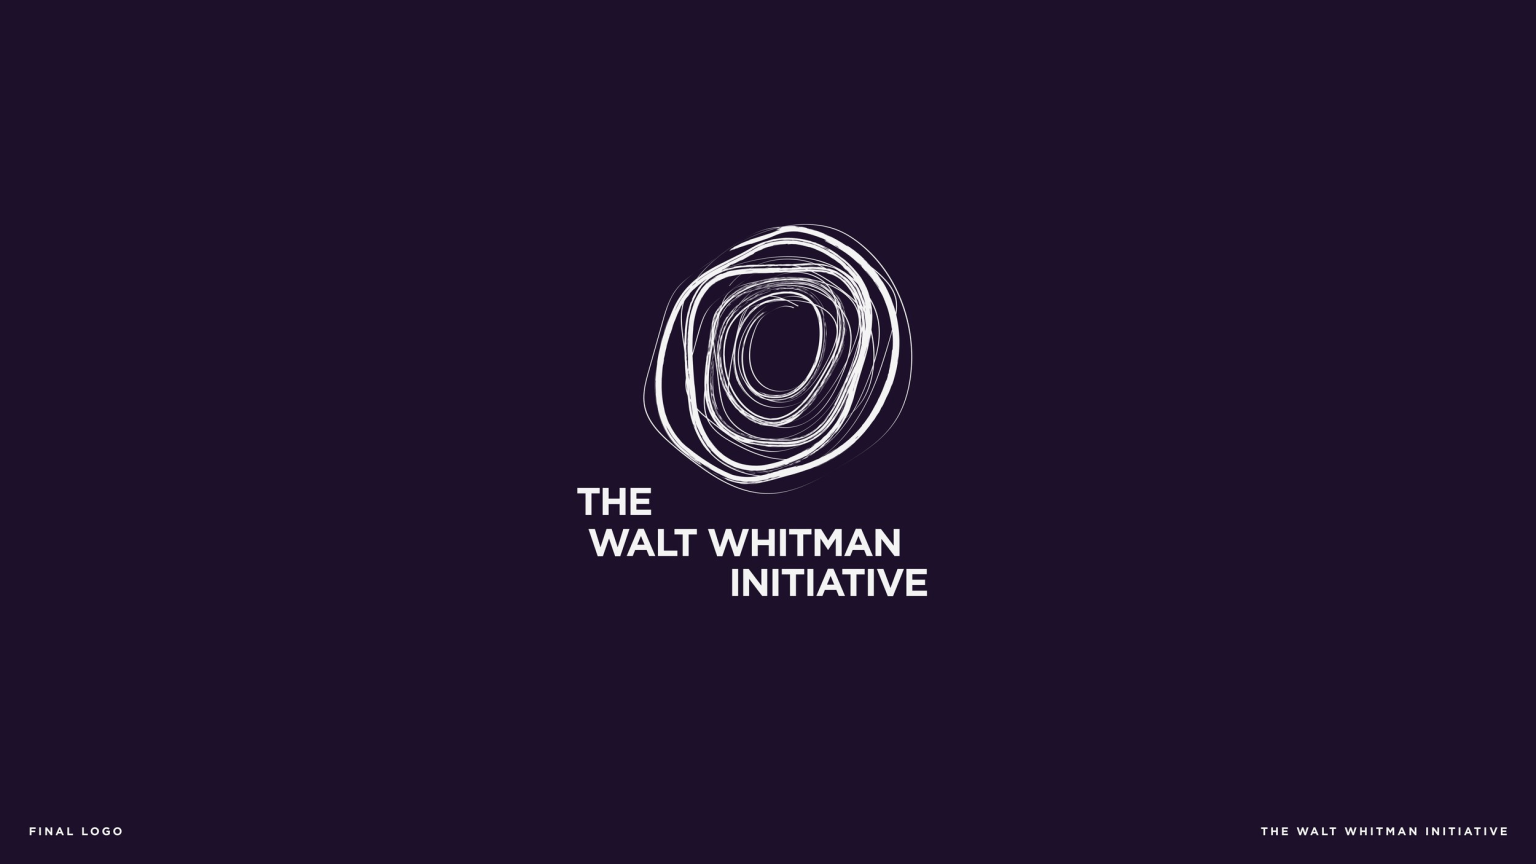 The Walt Whitman Initiative